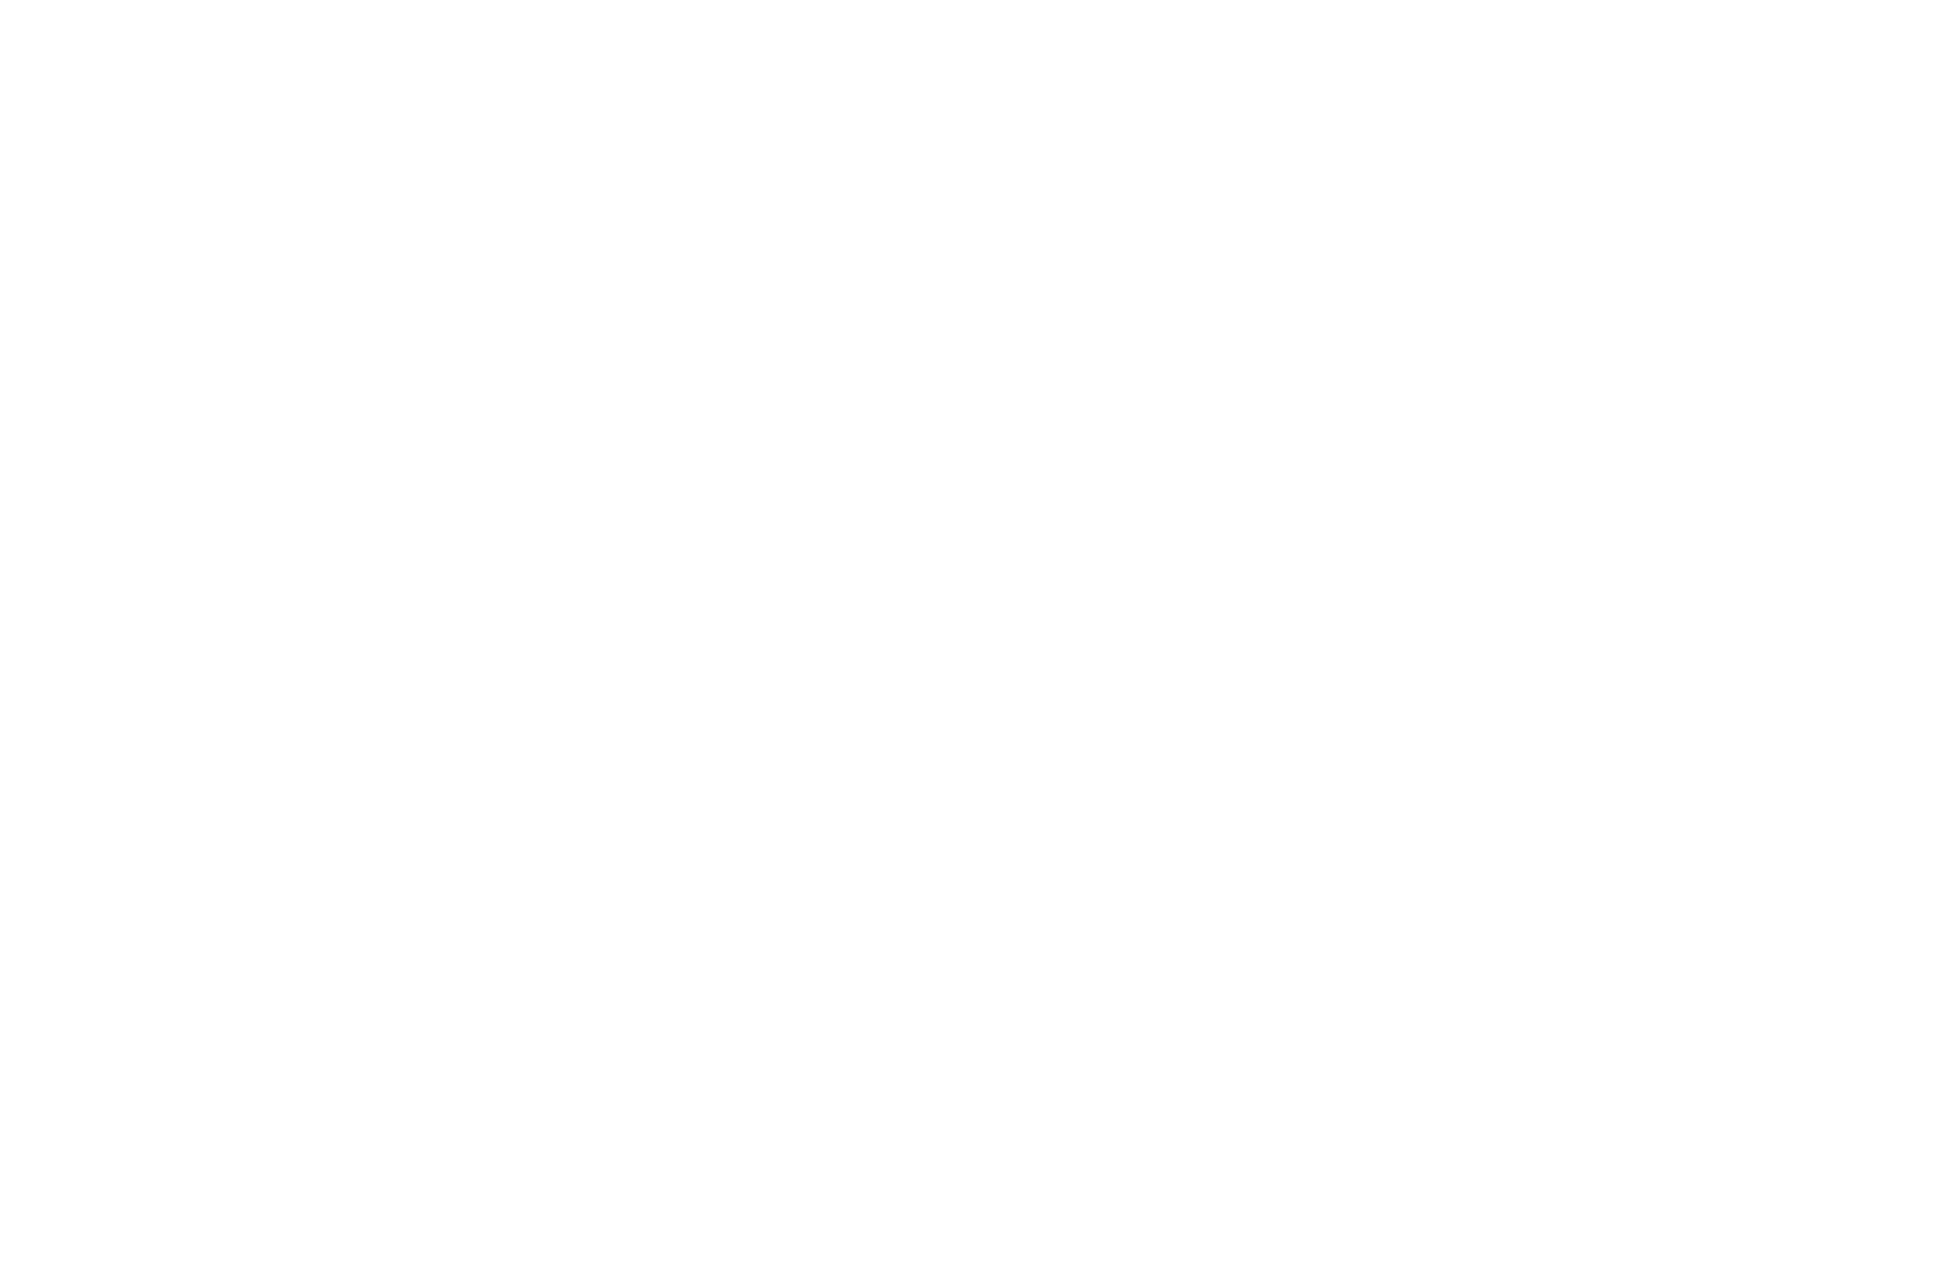 Bowery Film Festival Best Animation Spring 2019